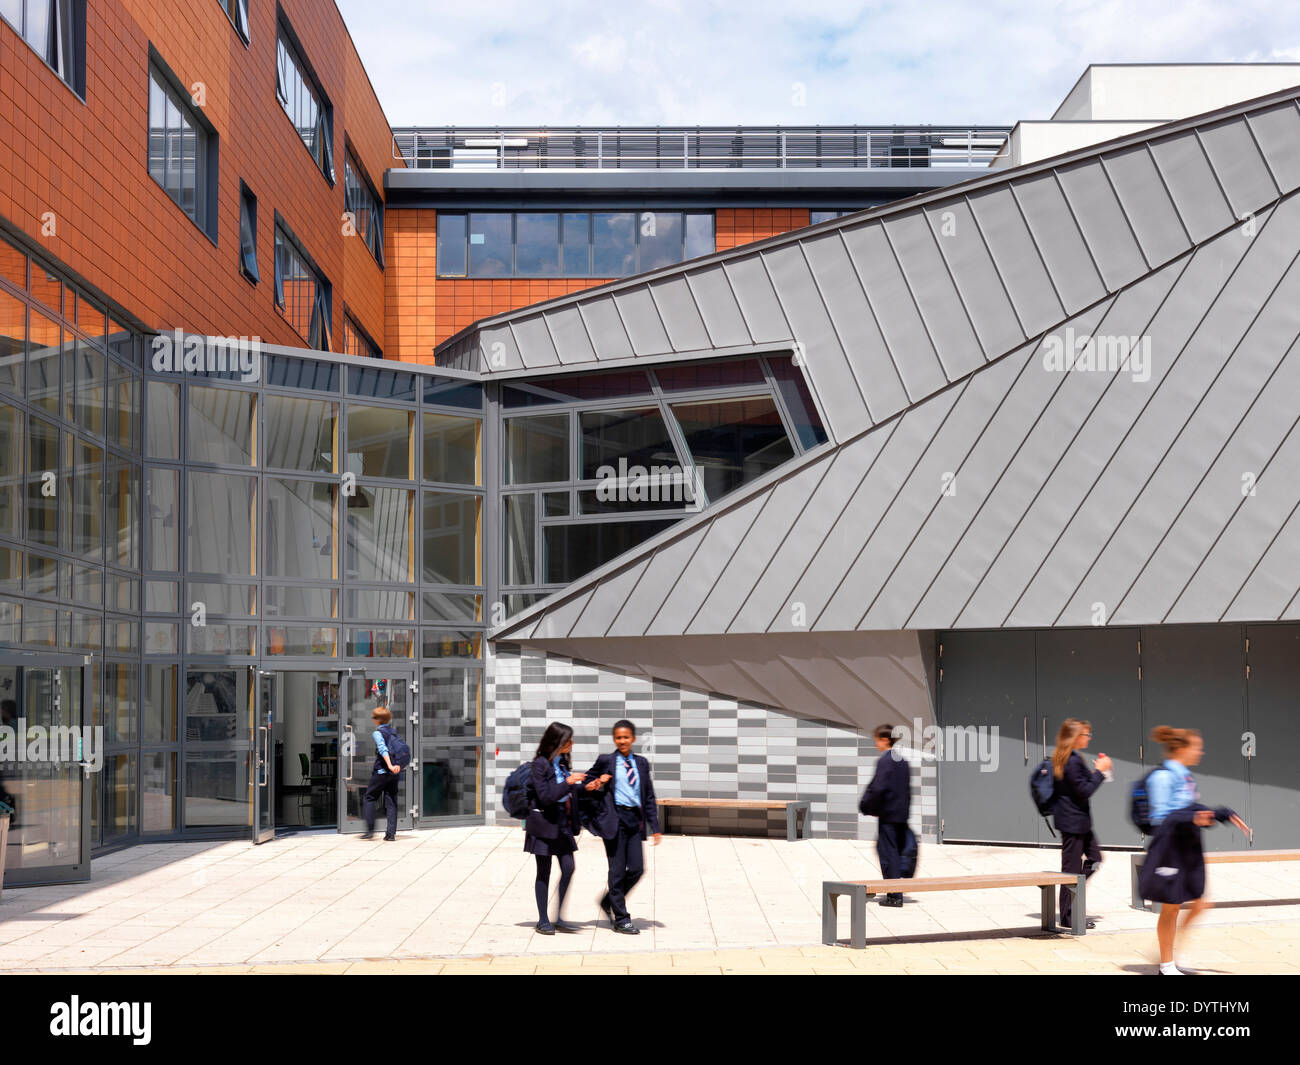 Schoolchildren outside the exterior of Pimlico Academy, Library and Adult Education centre, London - Stock Image